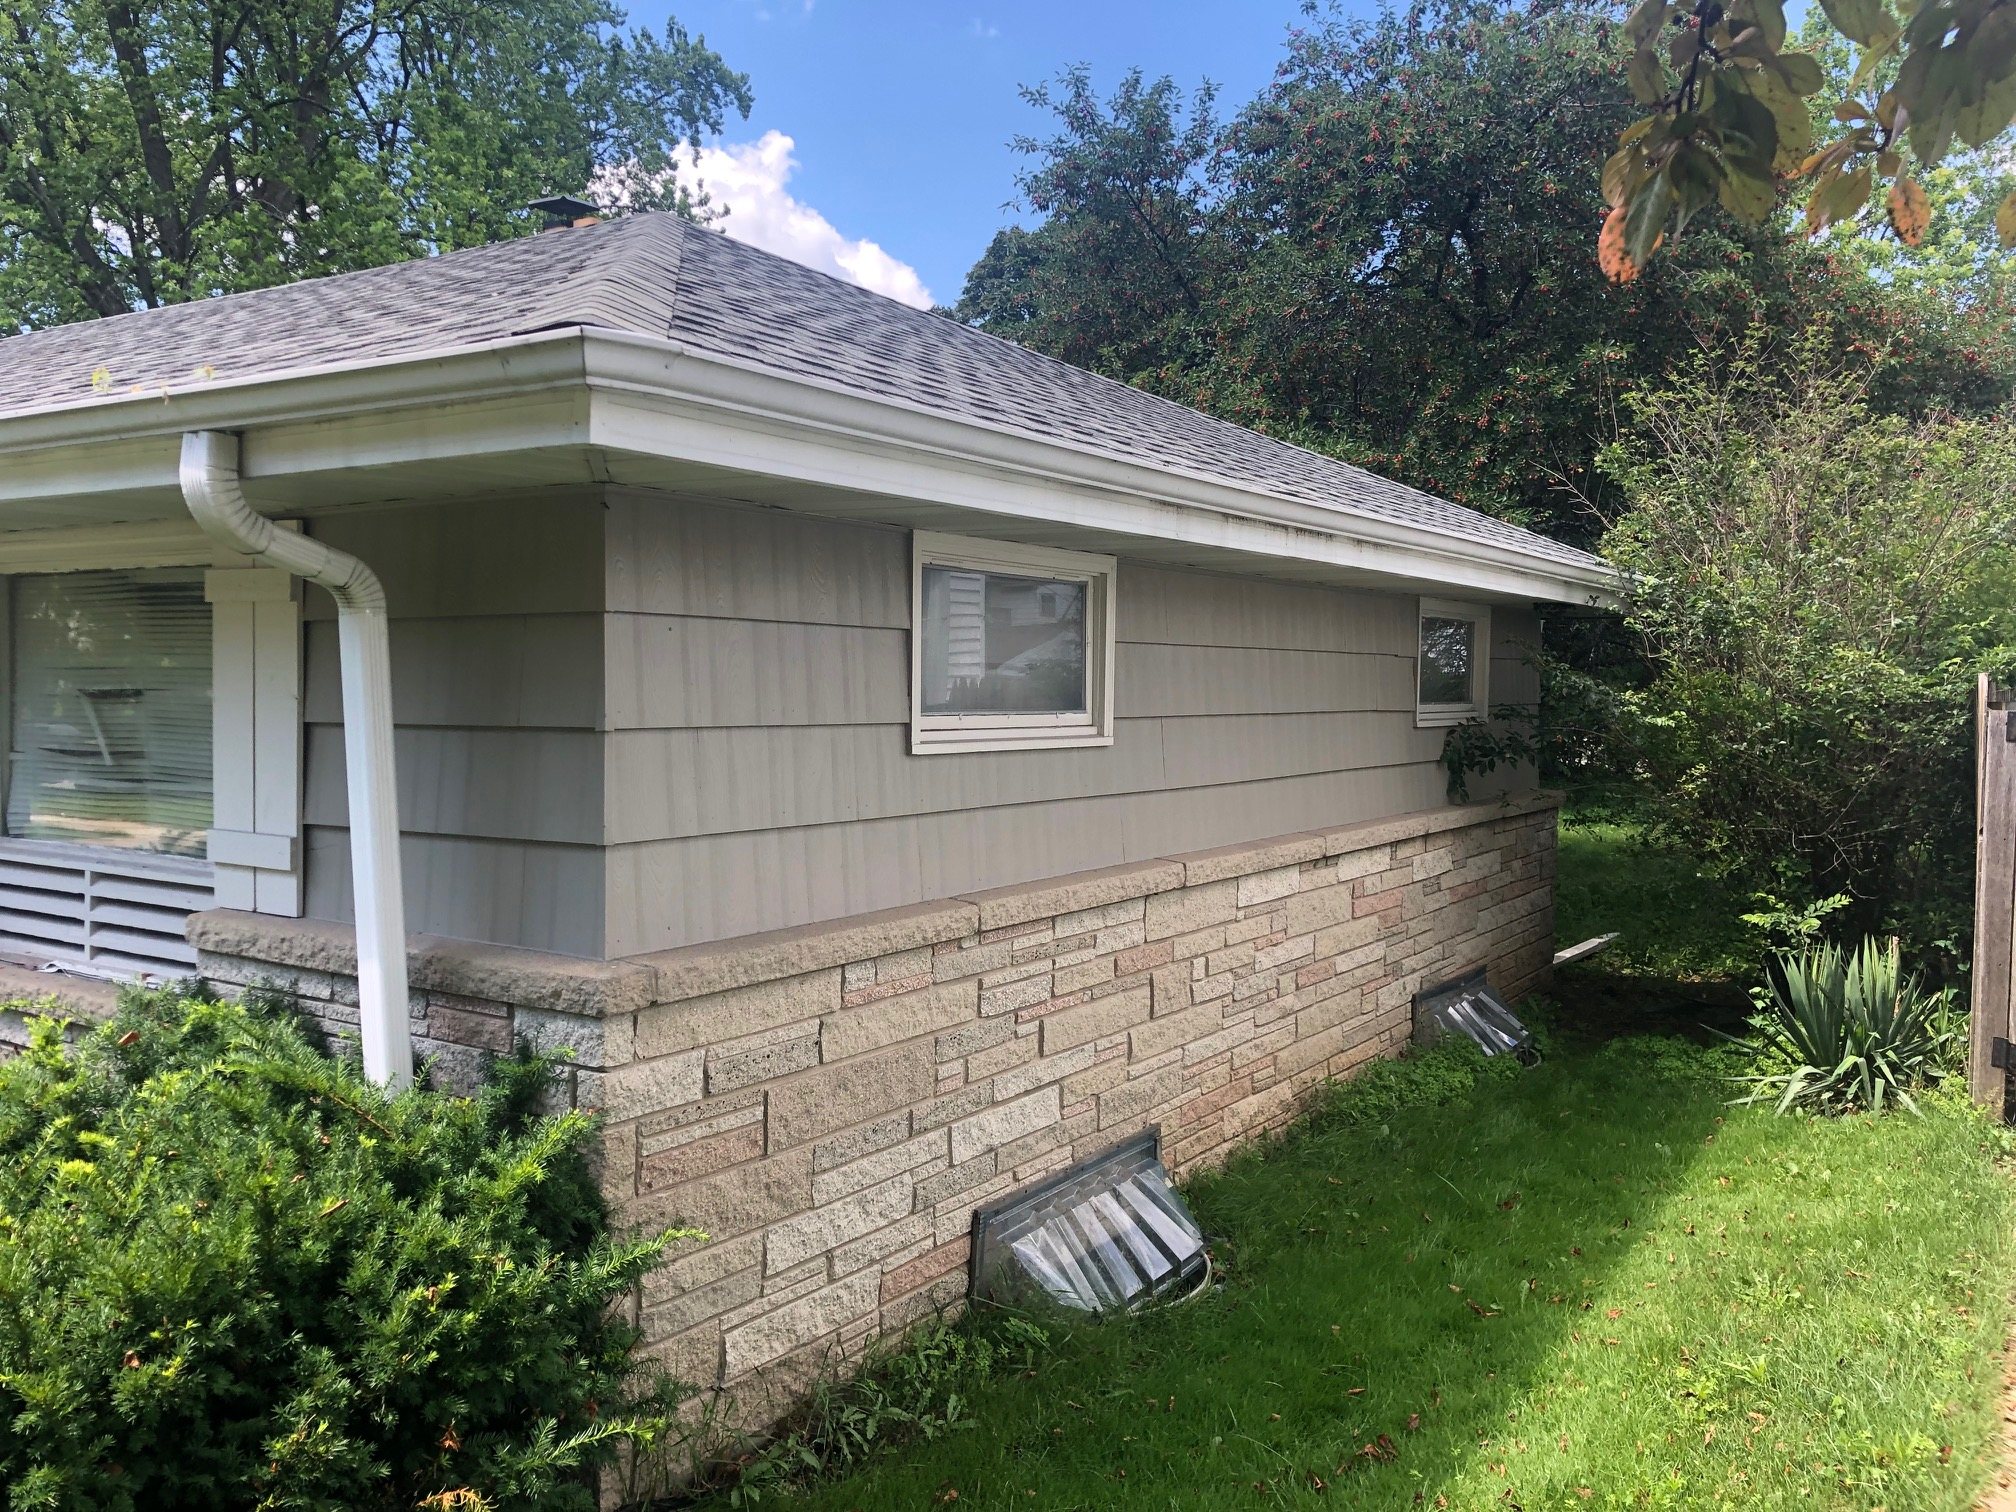 Wondrous Rep 4349 N 72Nd St Milwaukee Wi 53216 Beutiful Home Inspiration Cosmmahrainfo